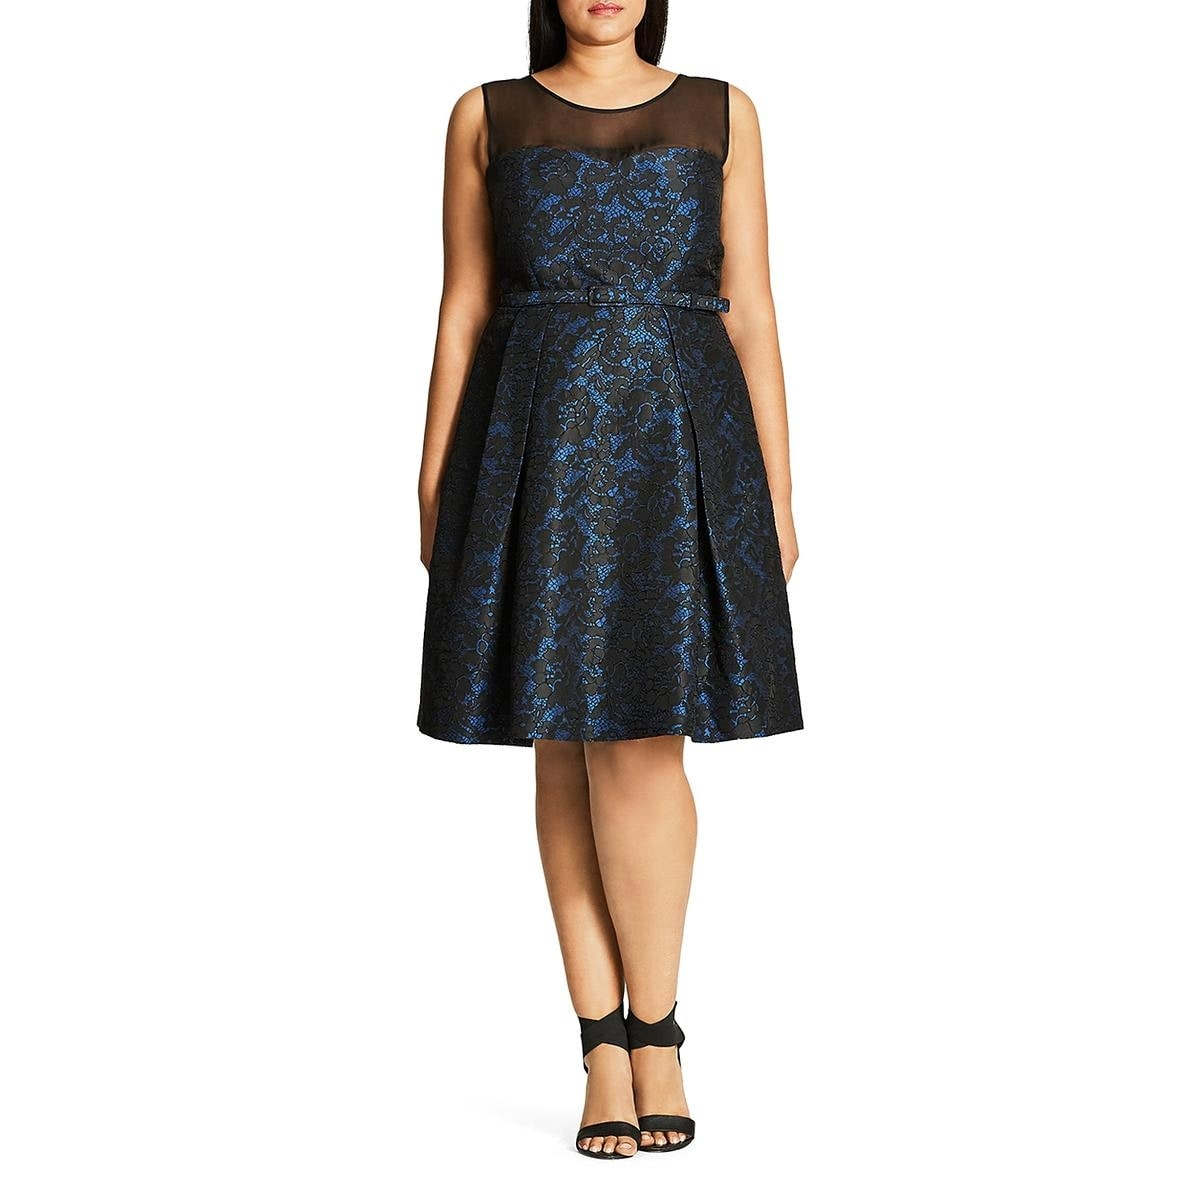 405c8fabe29 City Chic Womens Plus After Dark Cocktail Dress Floral Lace Sleeveless